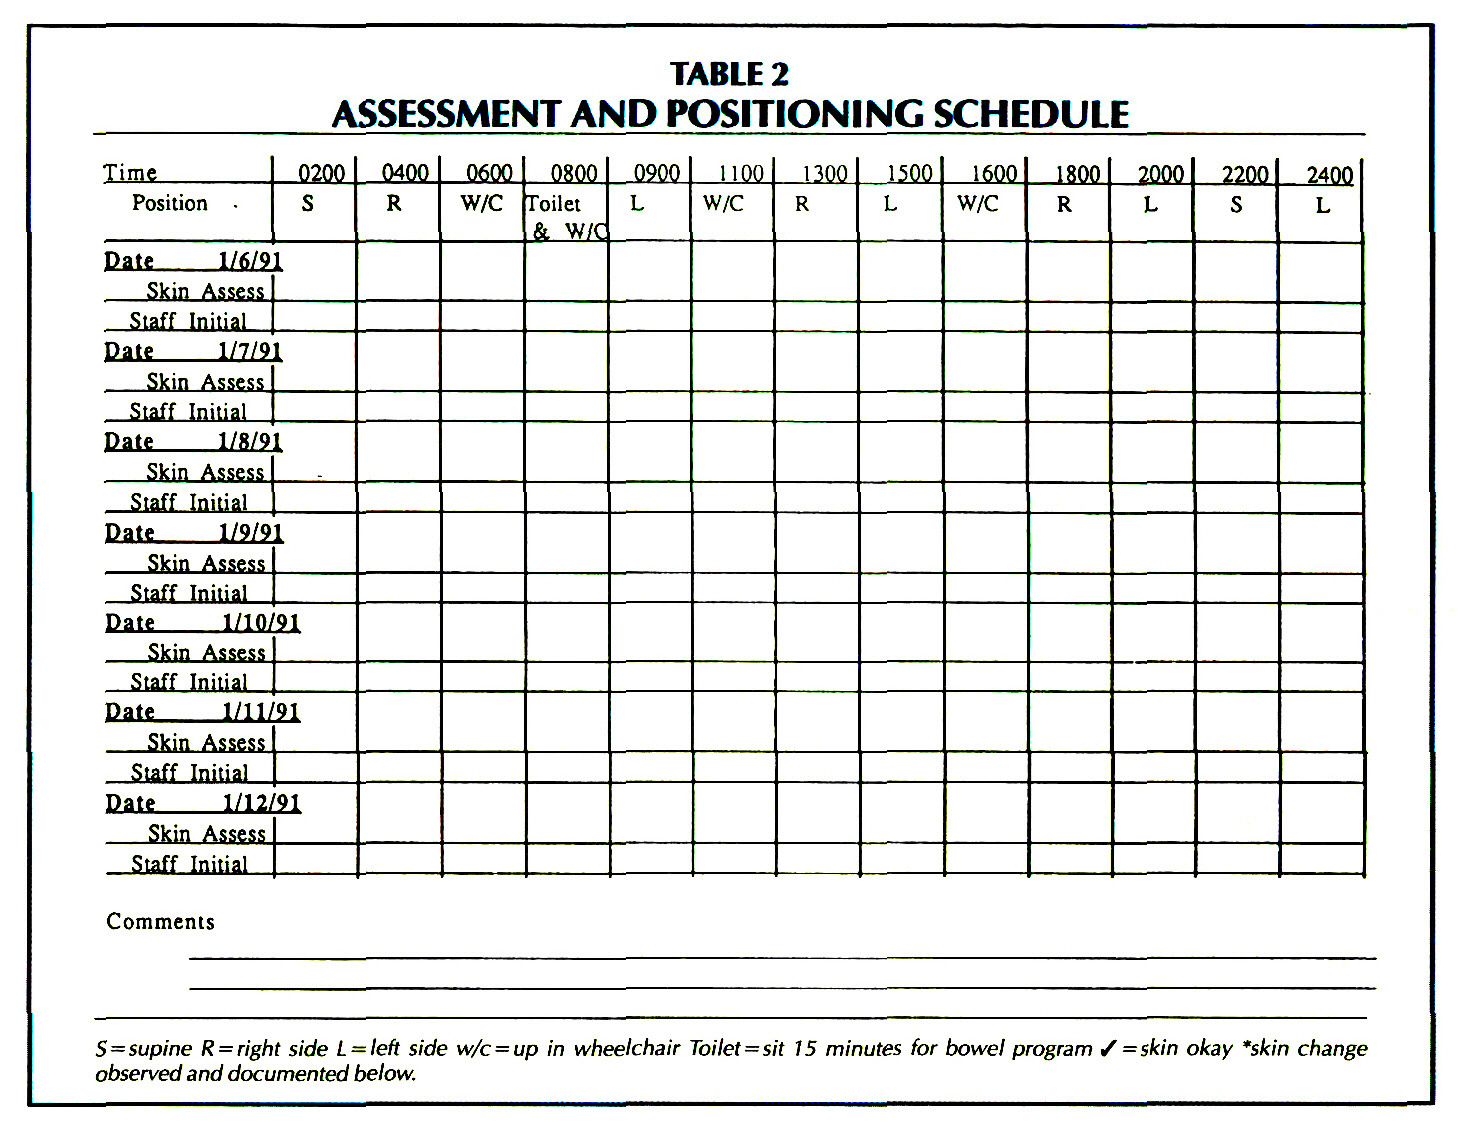 TABLE 2ASSESSMENT AND POSITIONING SCHEDULE